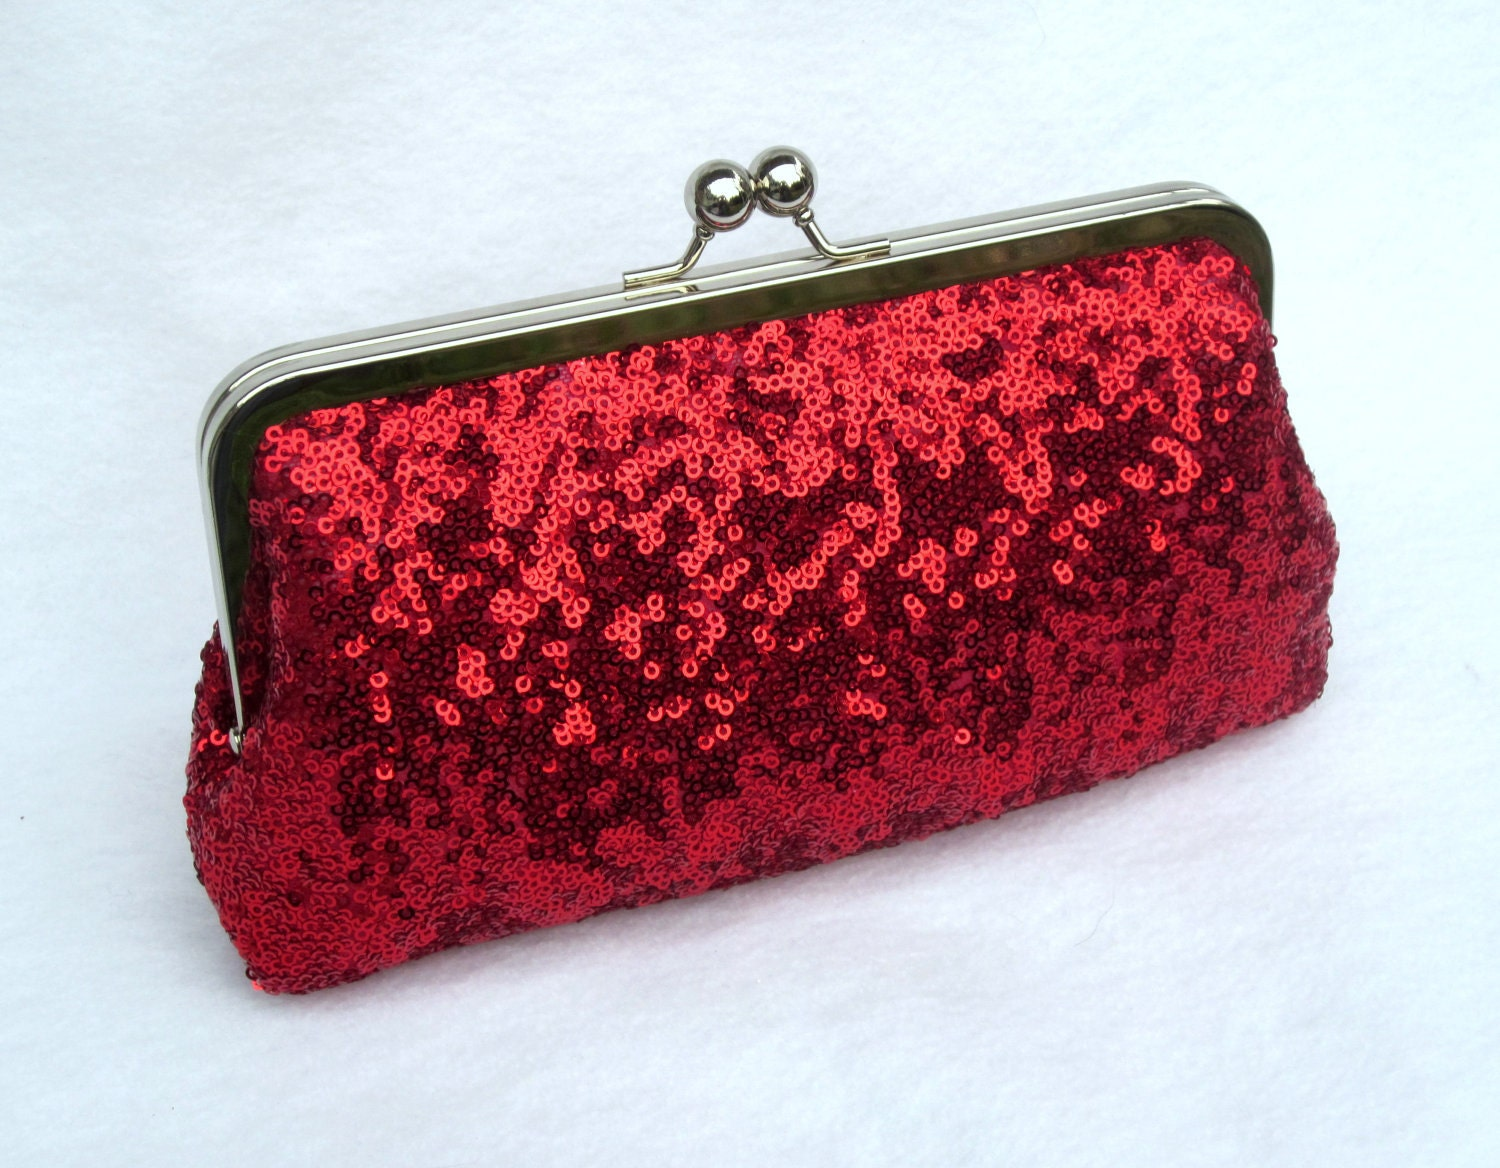 Sequin Clutch Prom Clutch Formal Purse Sequins Red By ItsSoClutch